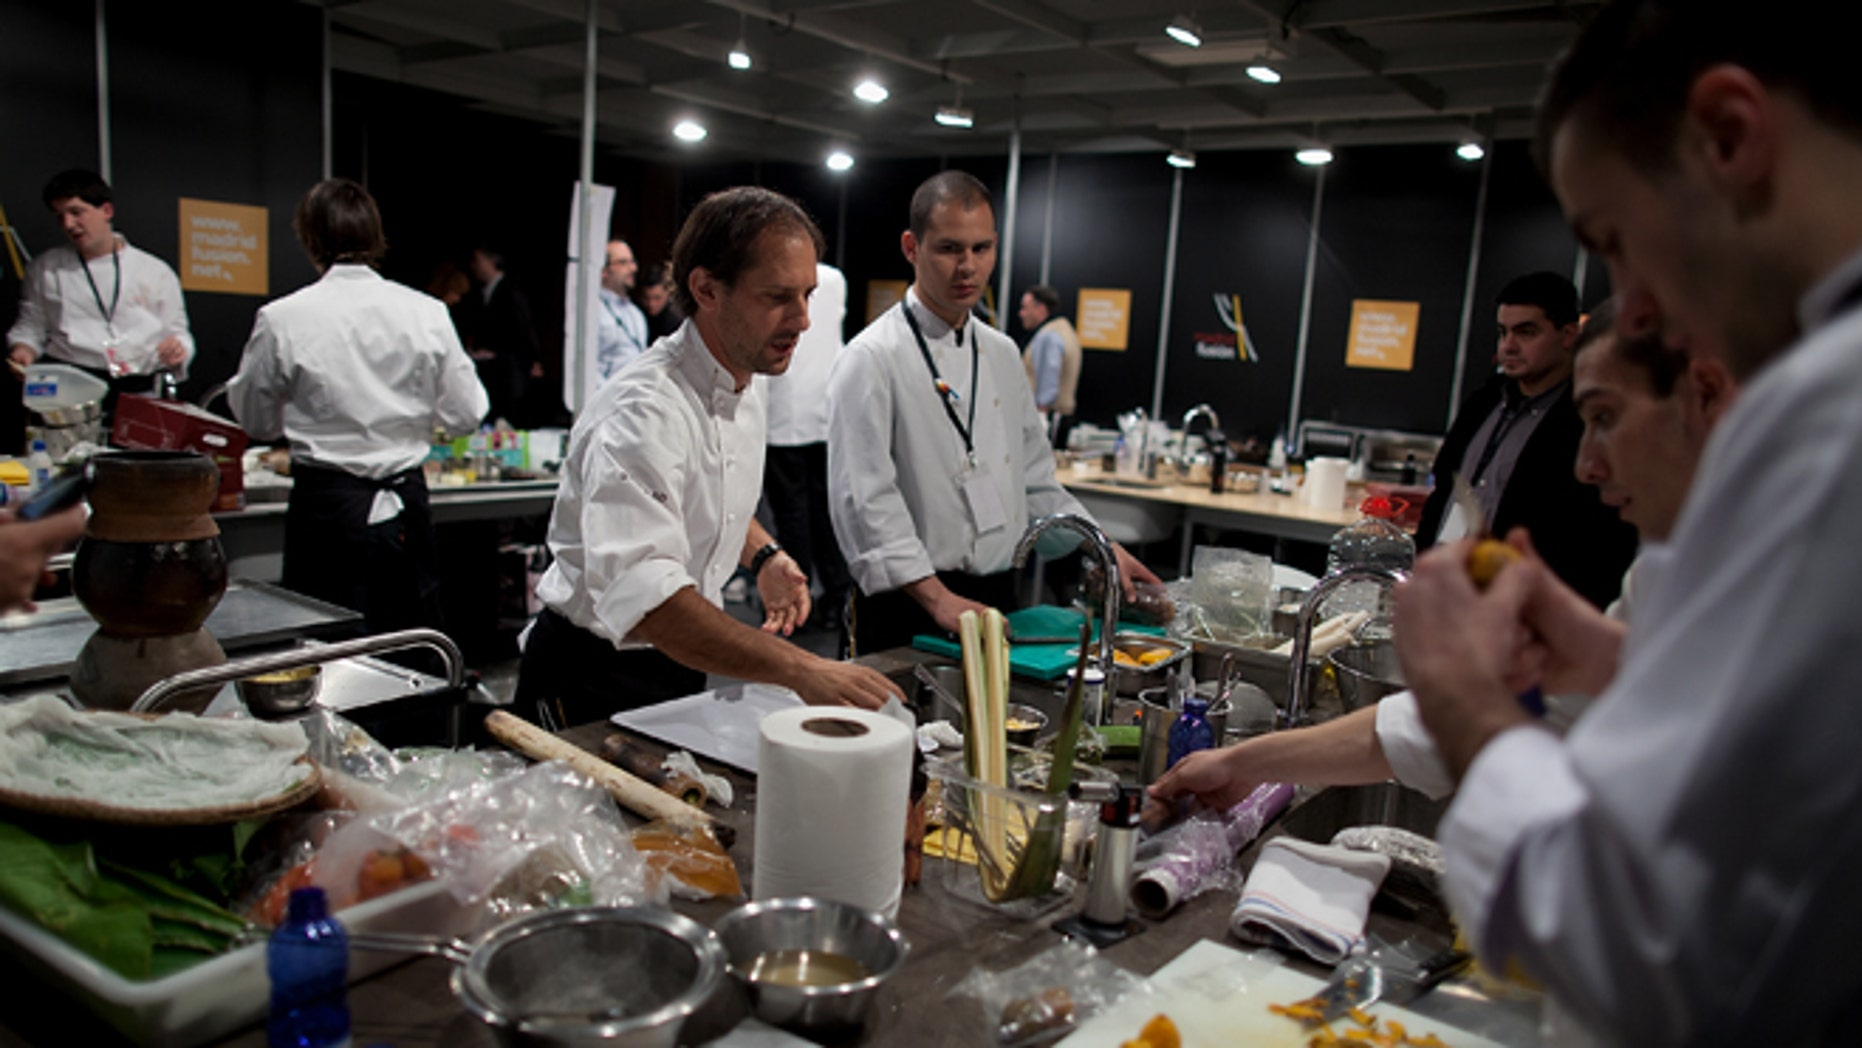 MADRID, SPAIN - JANUARY 26:  Peruvian Chef Pedro Miguel Schiaffino (3L) and his team prepares the food before a lecture on the third day of 'Madridfusion' International Gastronomic Fair in the 'Palacio de los Congresos' on January 26, 2012 in Madrid, Spain.  (Photo by Pablo Blazquez Dominguez/Getty Images)